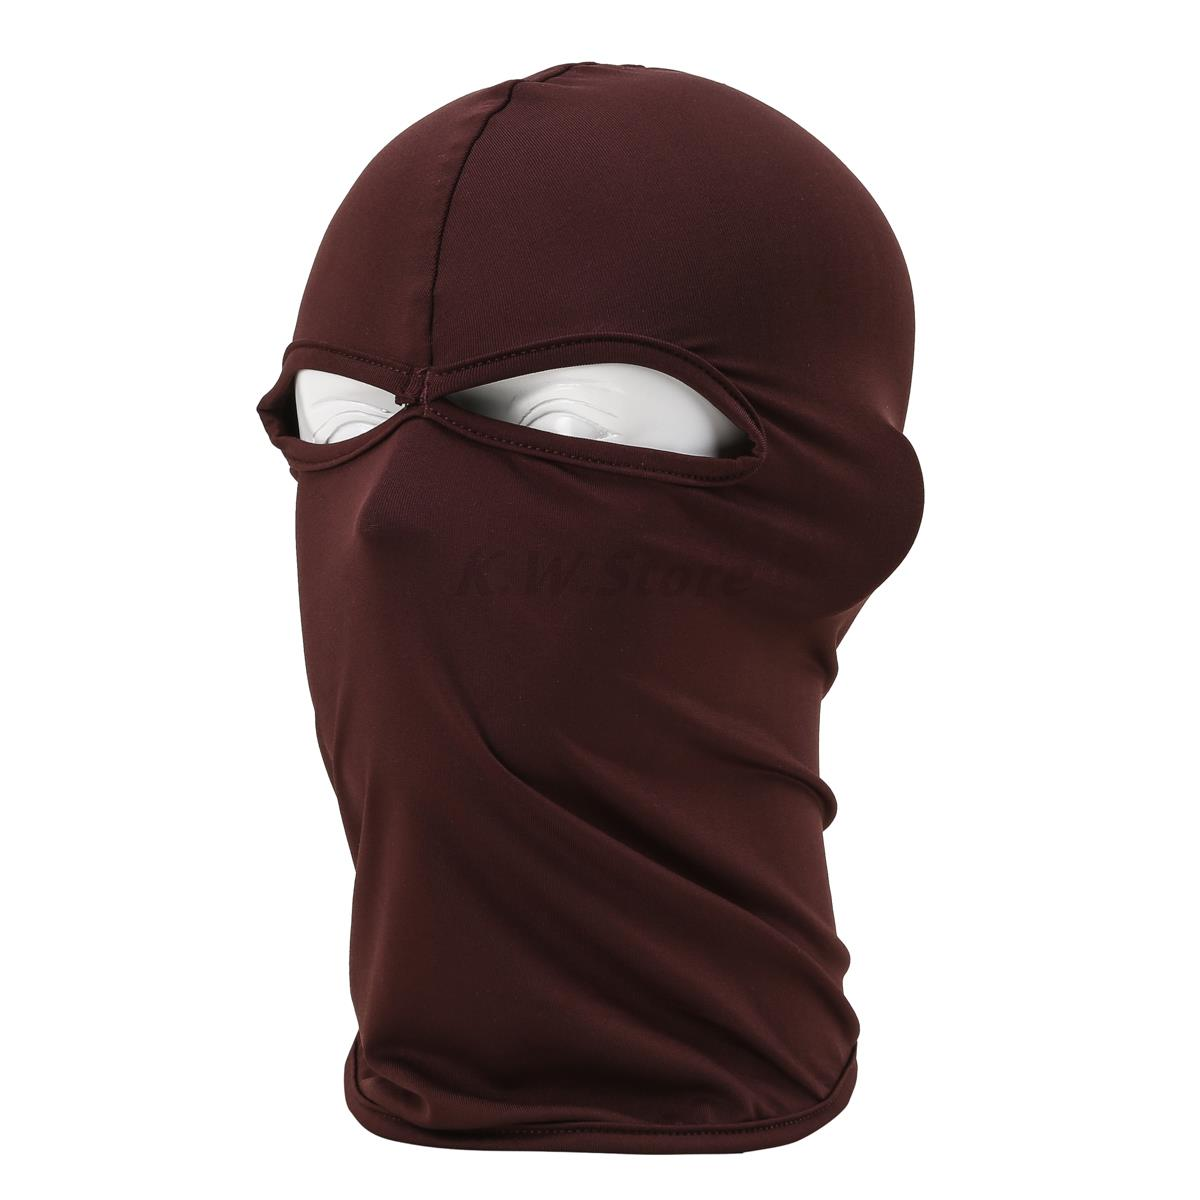 Compare Prices on Mask Military- Online Shopping/Buy Low Price ...